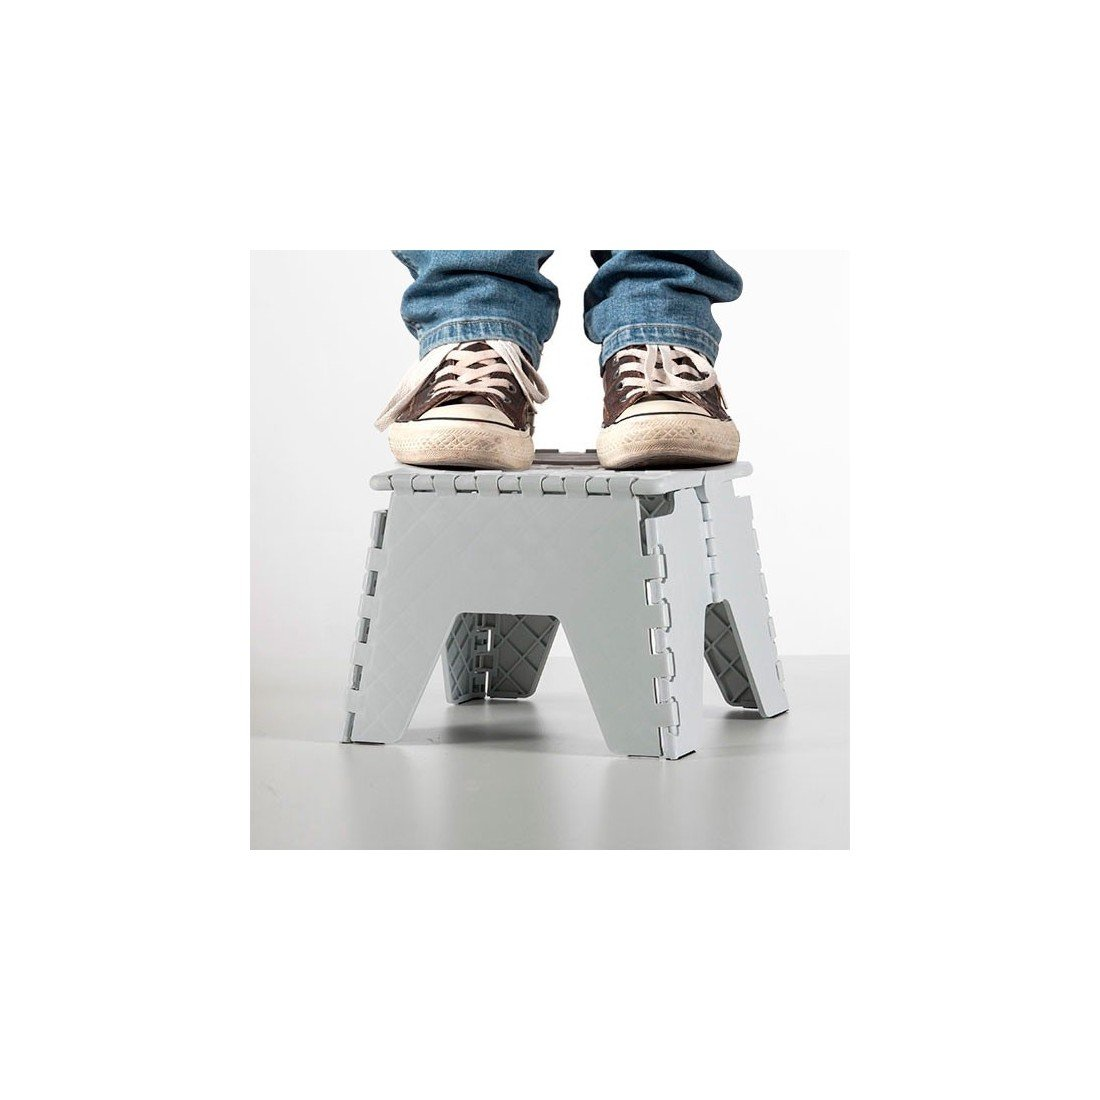 NO DEFINIDO Not Defined – Folding Stool Folding stool .